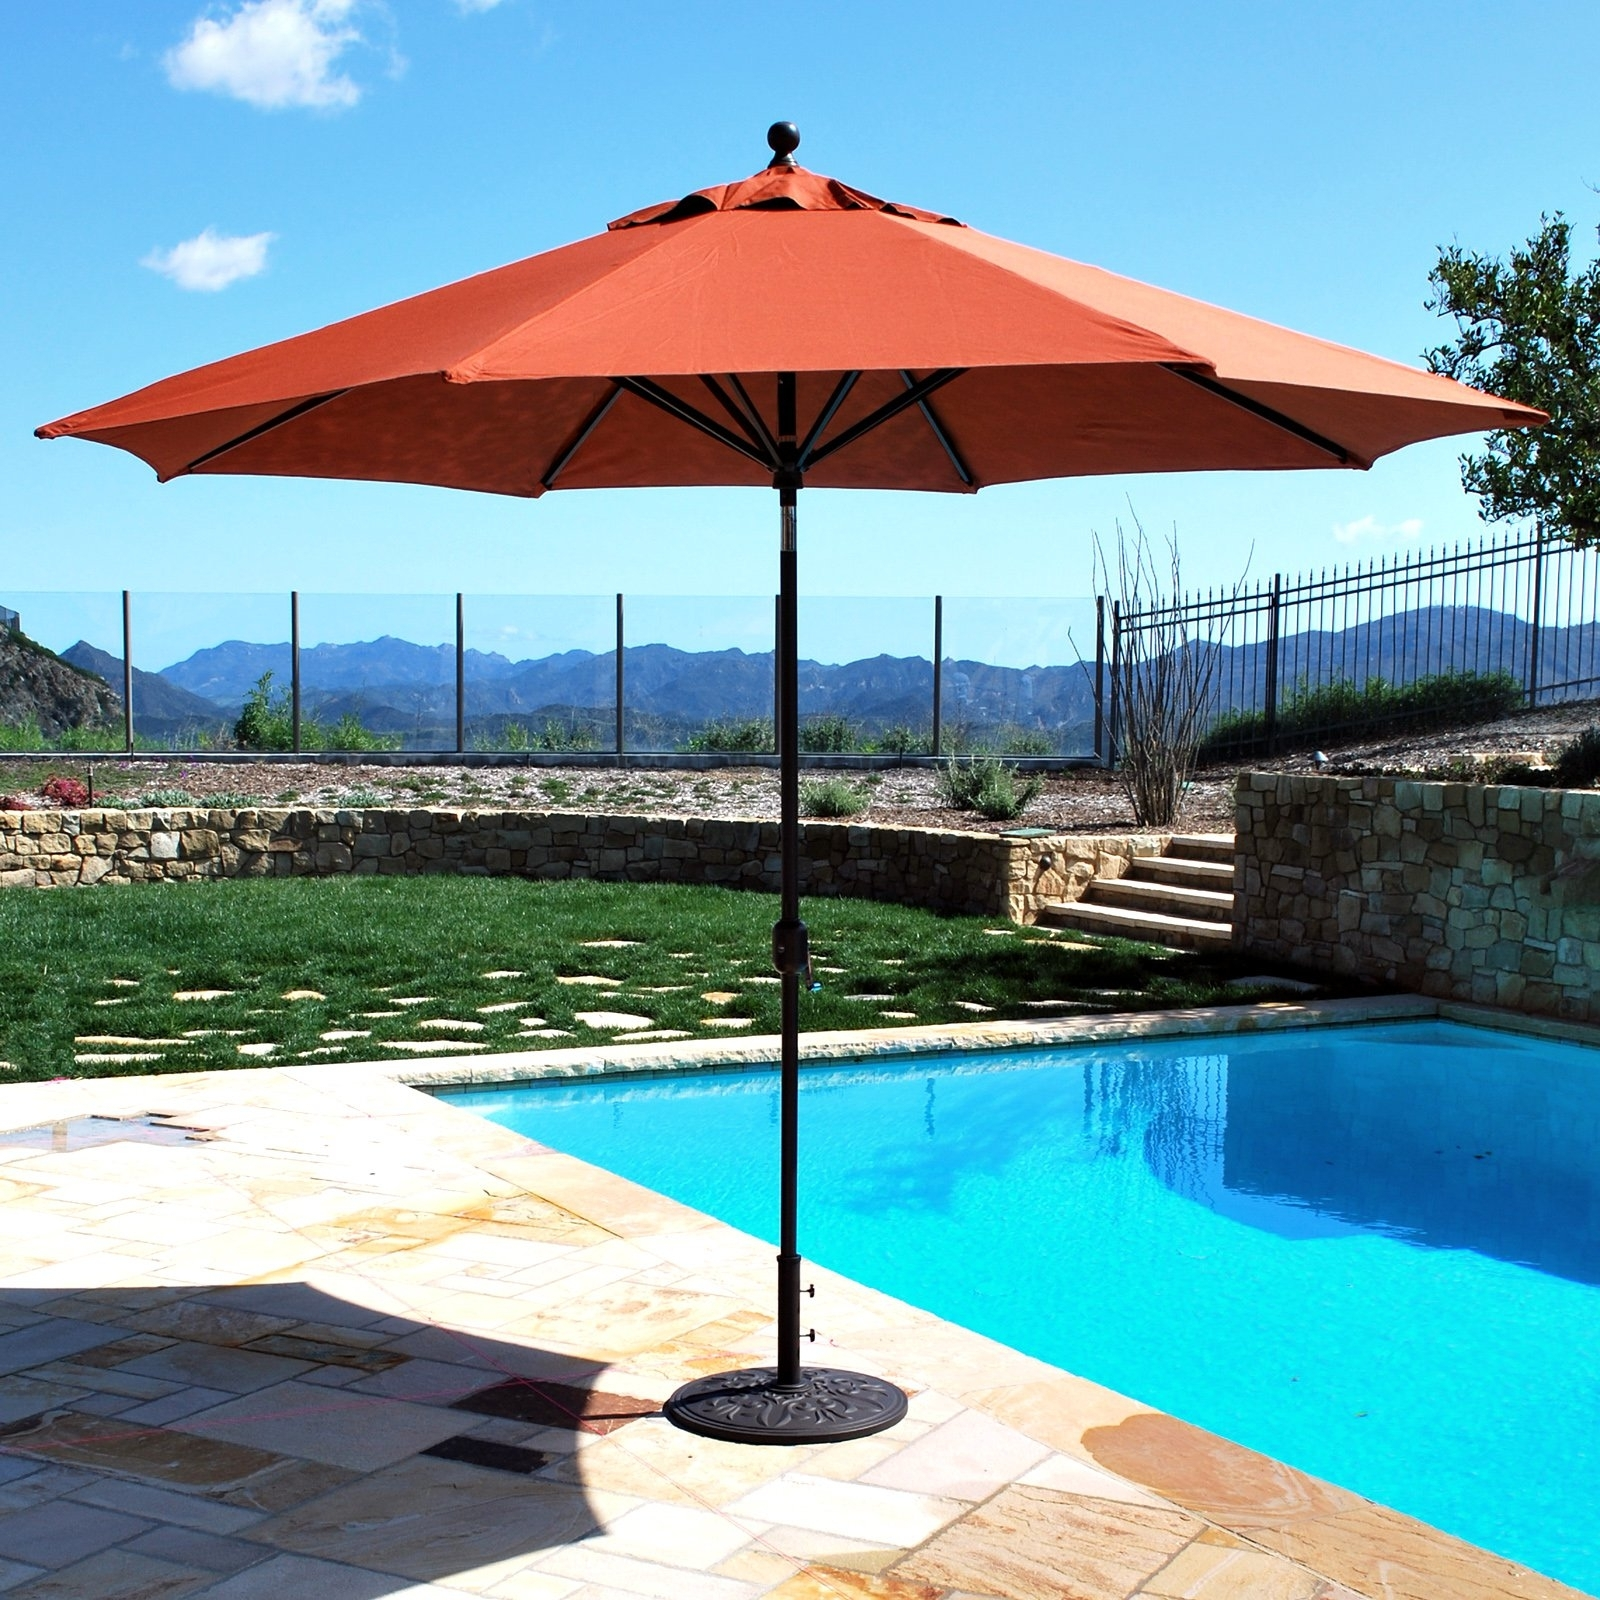 11 Ft Patio Umbrellas With Best And Newest Galtech Sunbrella 11 Ft. Maximum Shade Deluxe Aluminum Auto Tilt (Gallery 19 of 20)